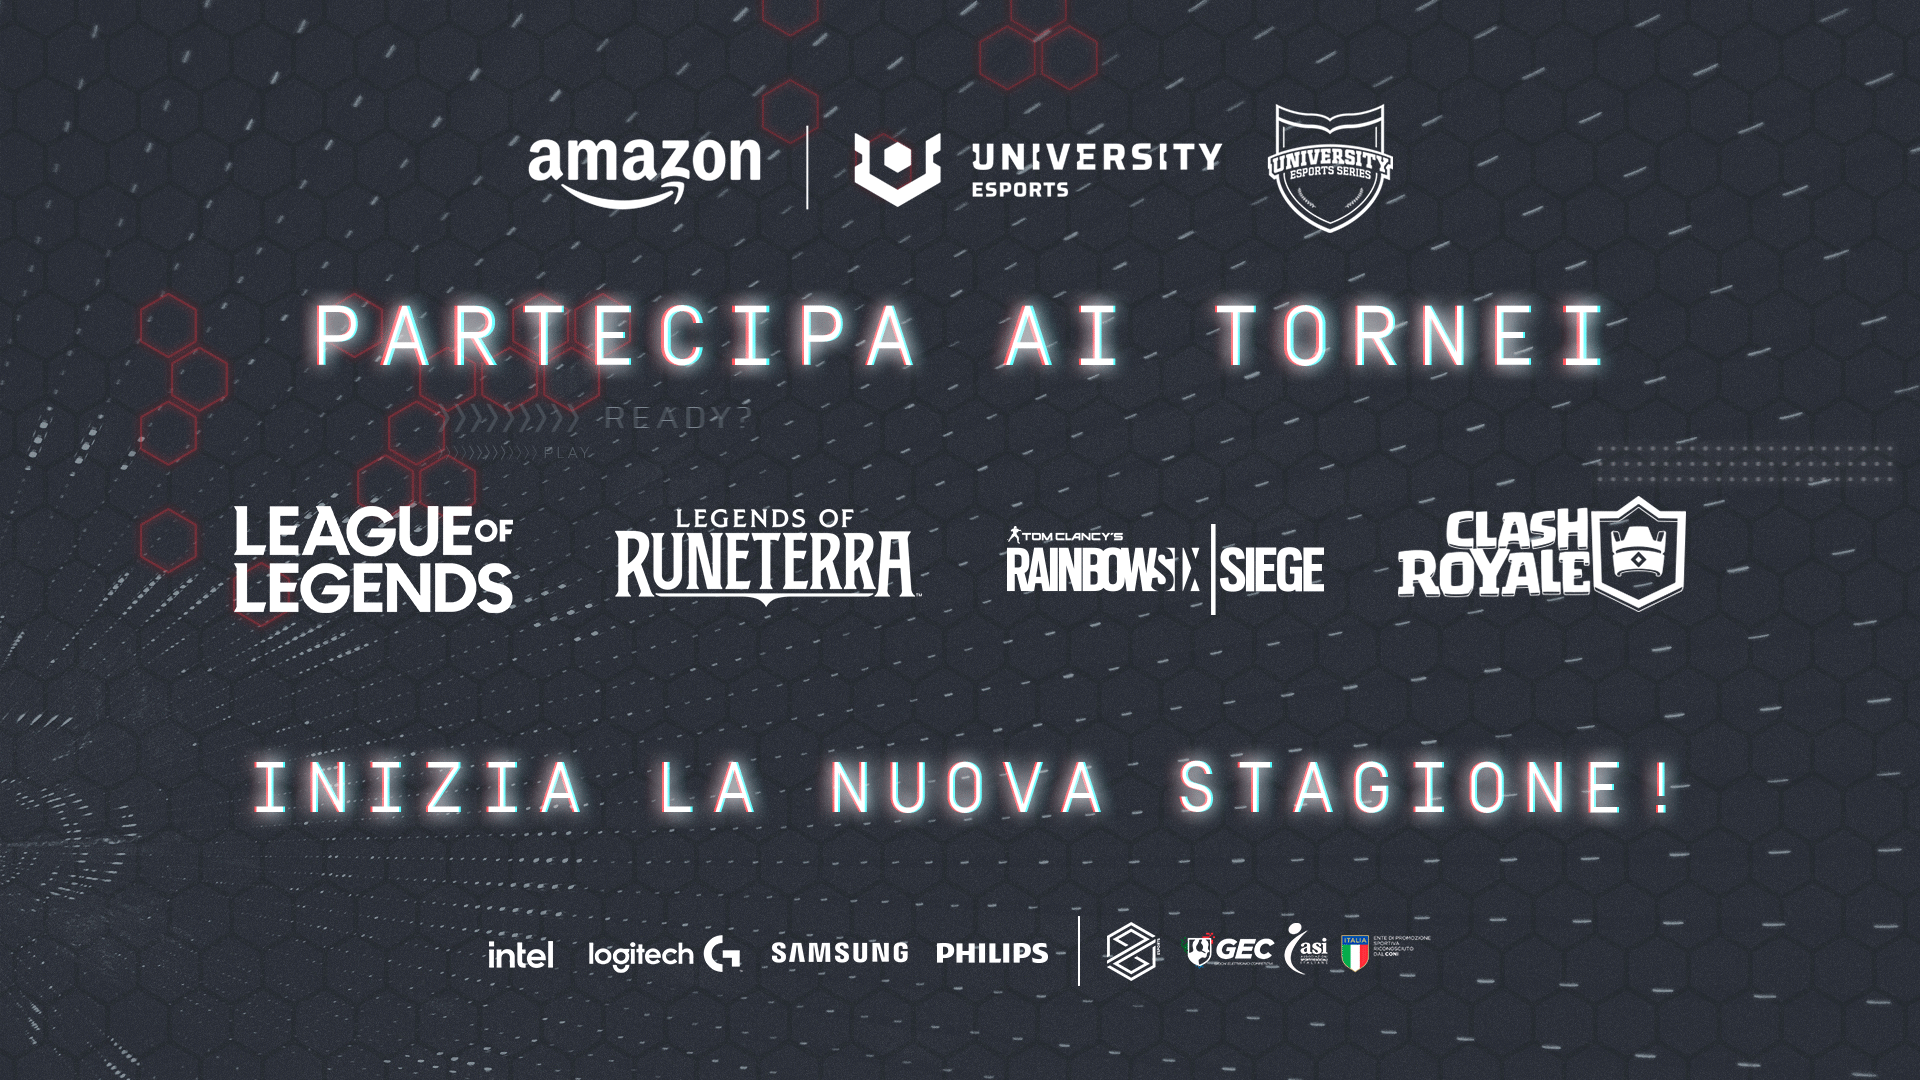 Amazon University Esports: il torneo per atenei italiani